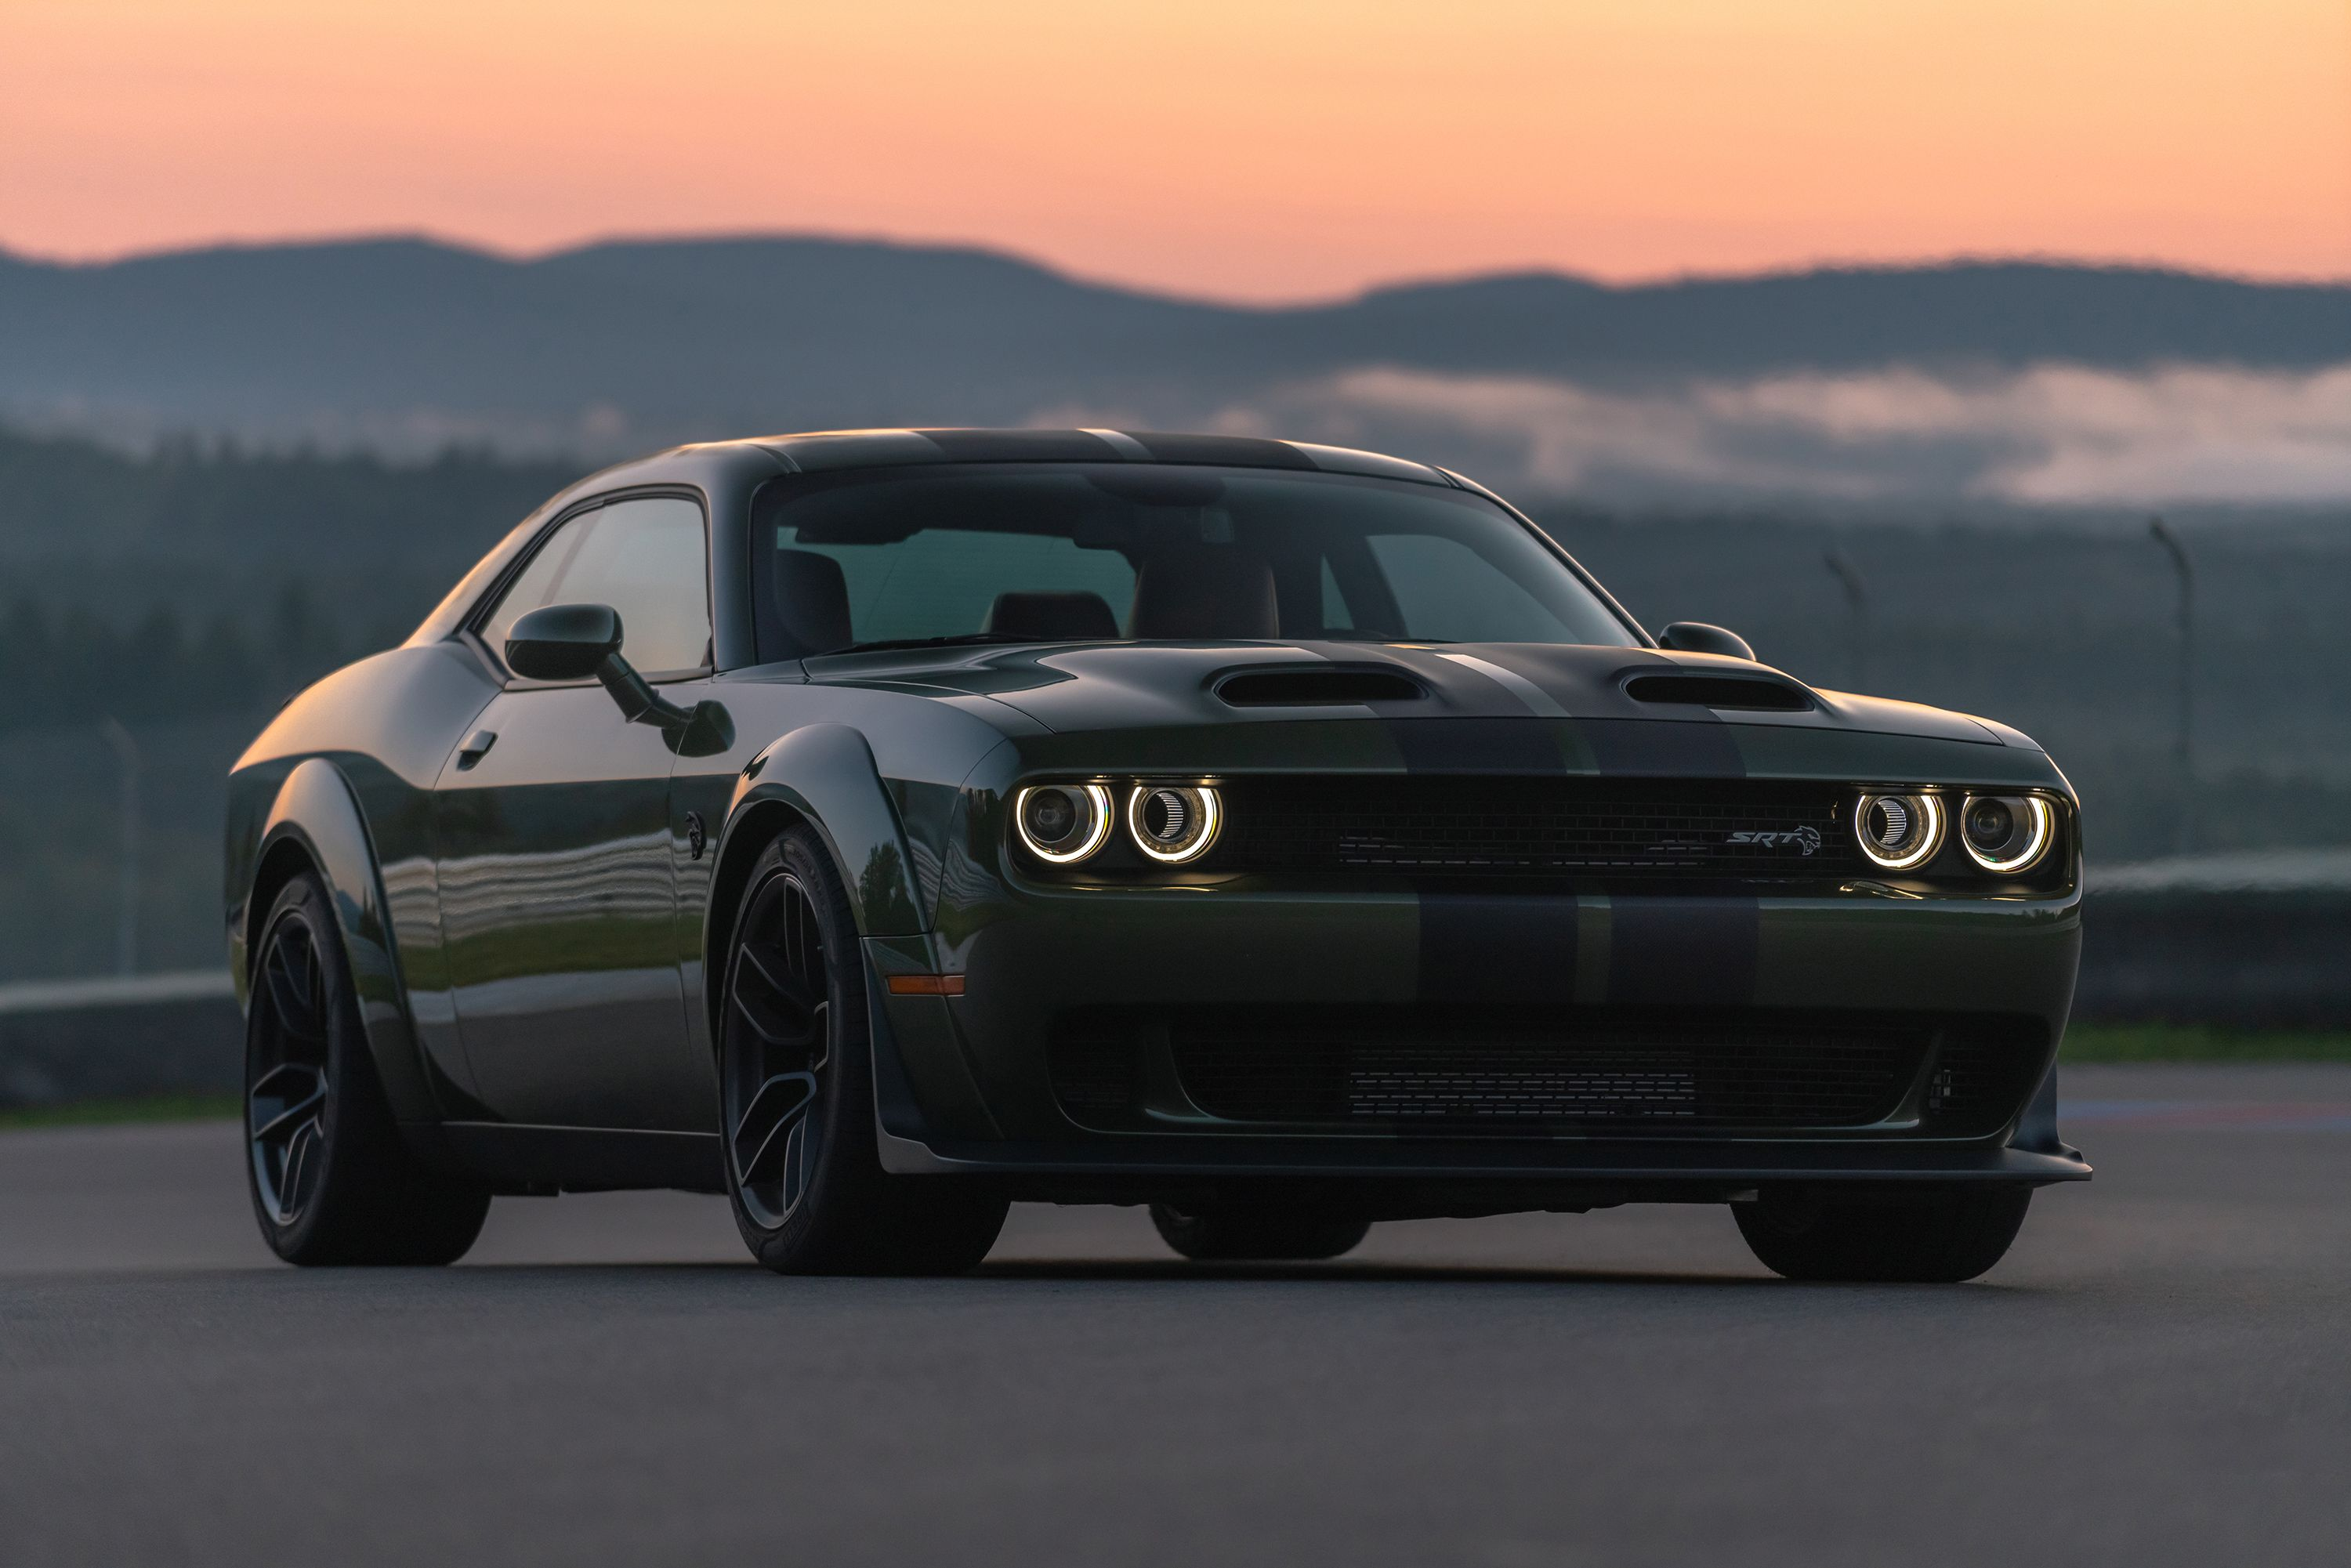 2019 Dodge Challenger Srt Hellcat Redeye F8 Green With Dual Carbon